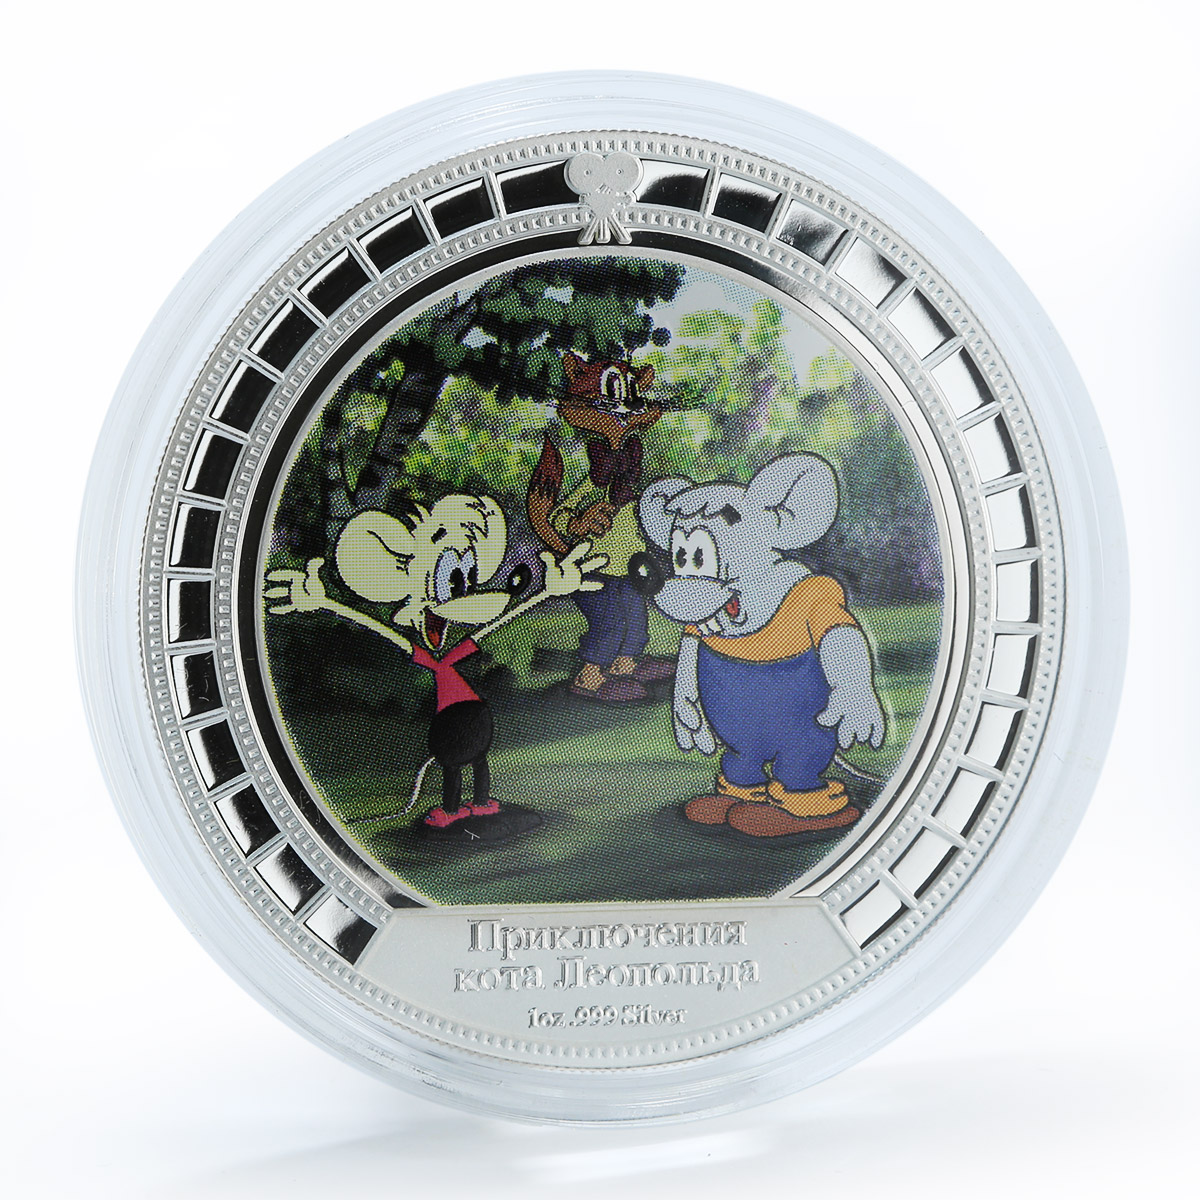 Cook Islands $2 Soyuzmultfilm Nutcracker Thumbelina Leopold set of 4 coins 2008